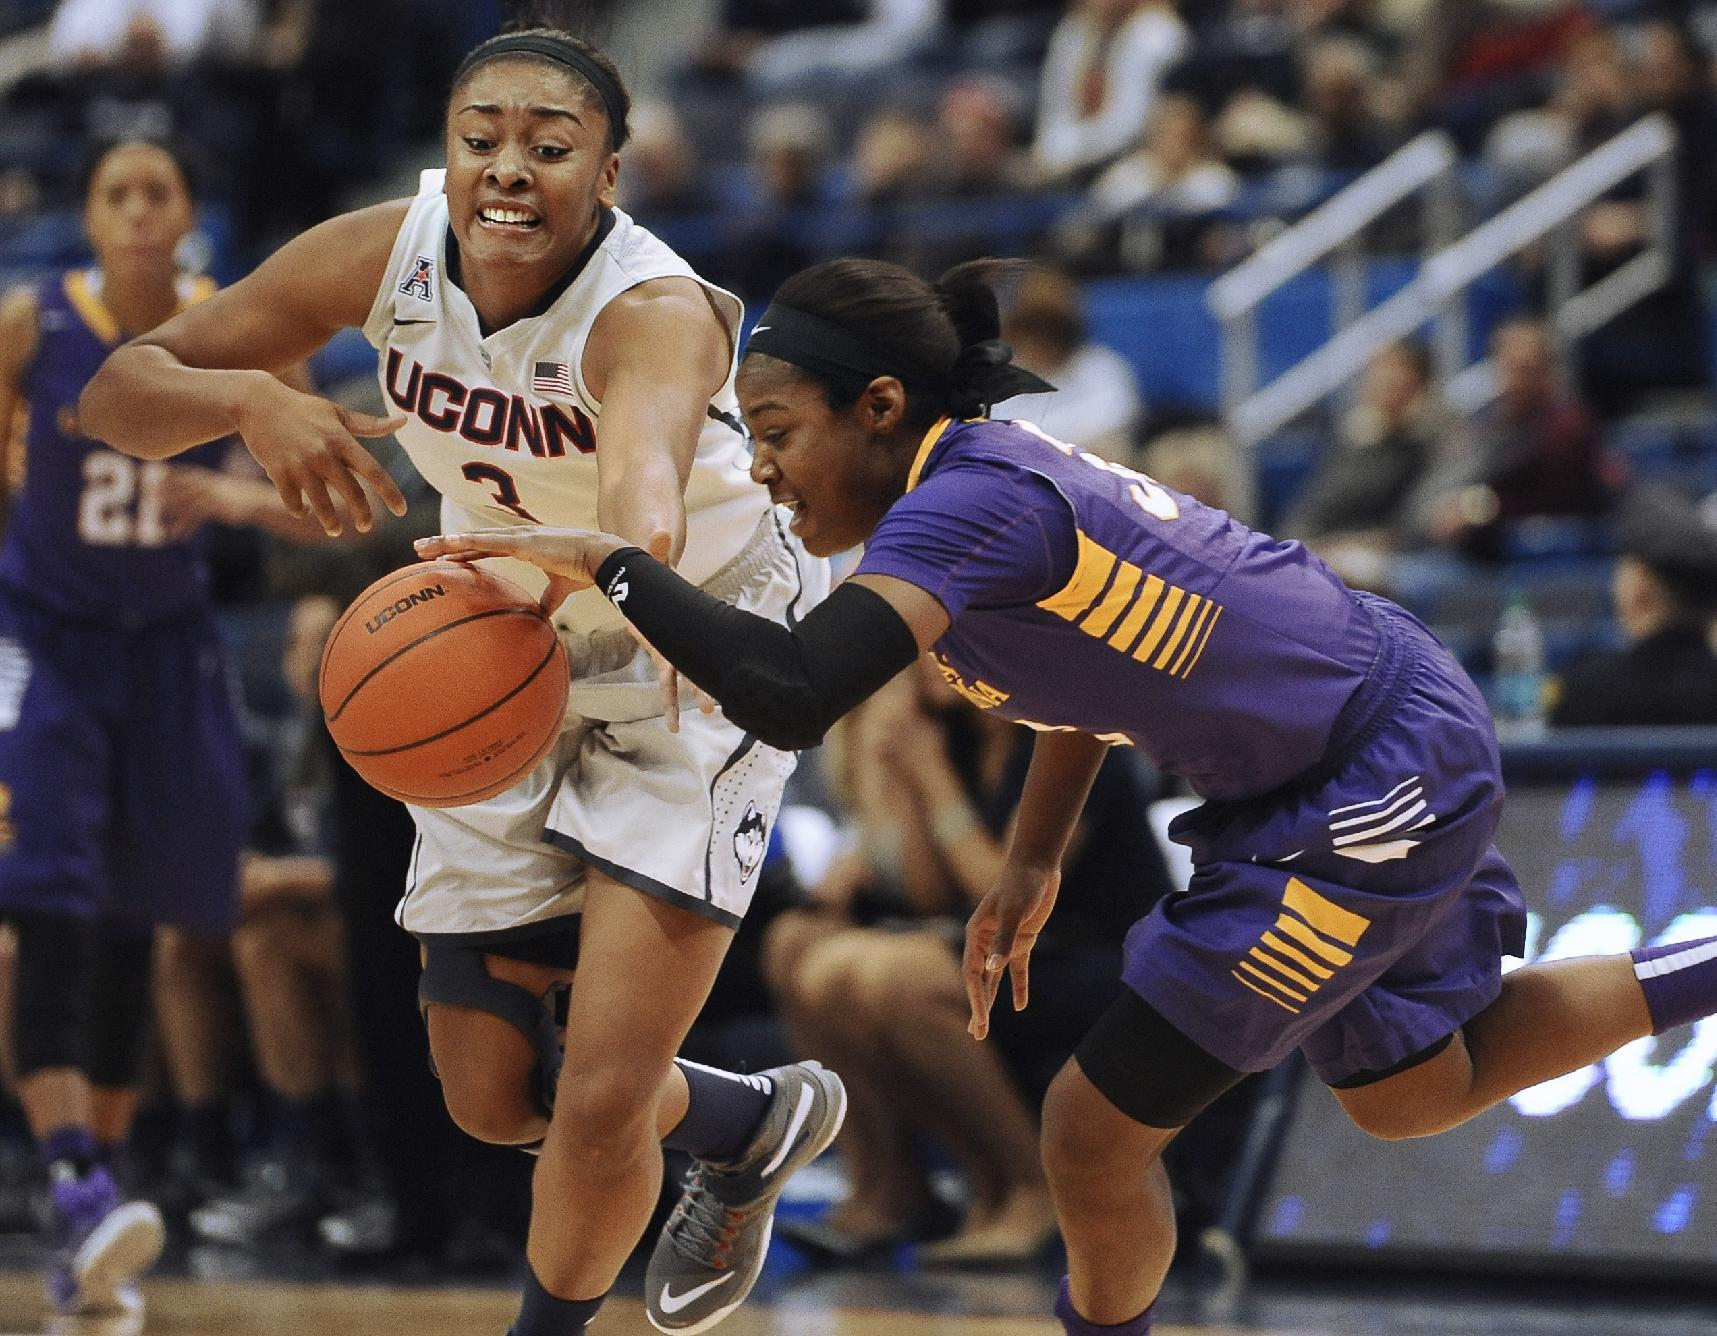 Stokes triple-double leads Huskies over East Carolina 87-32